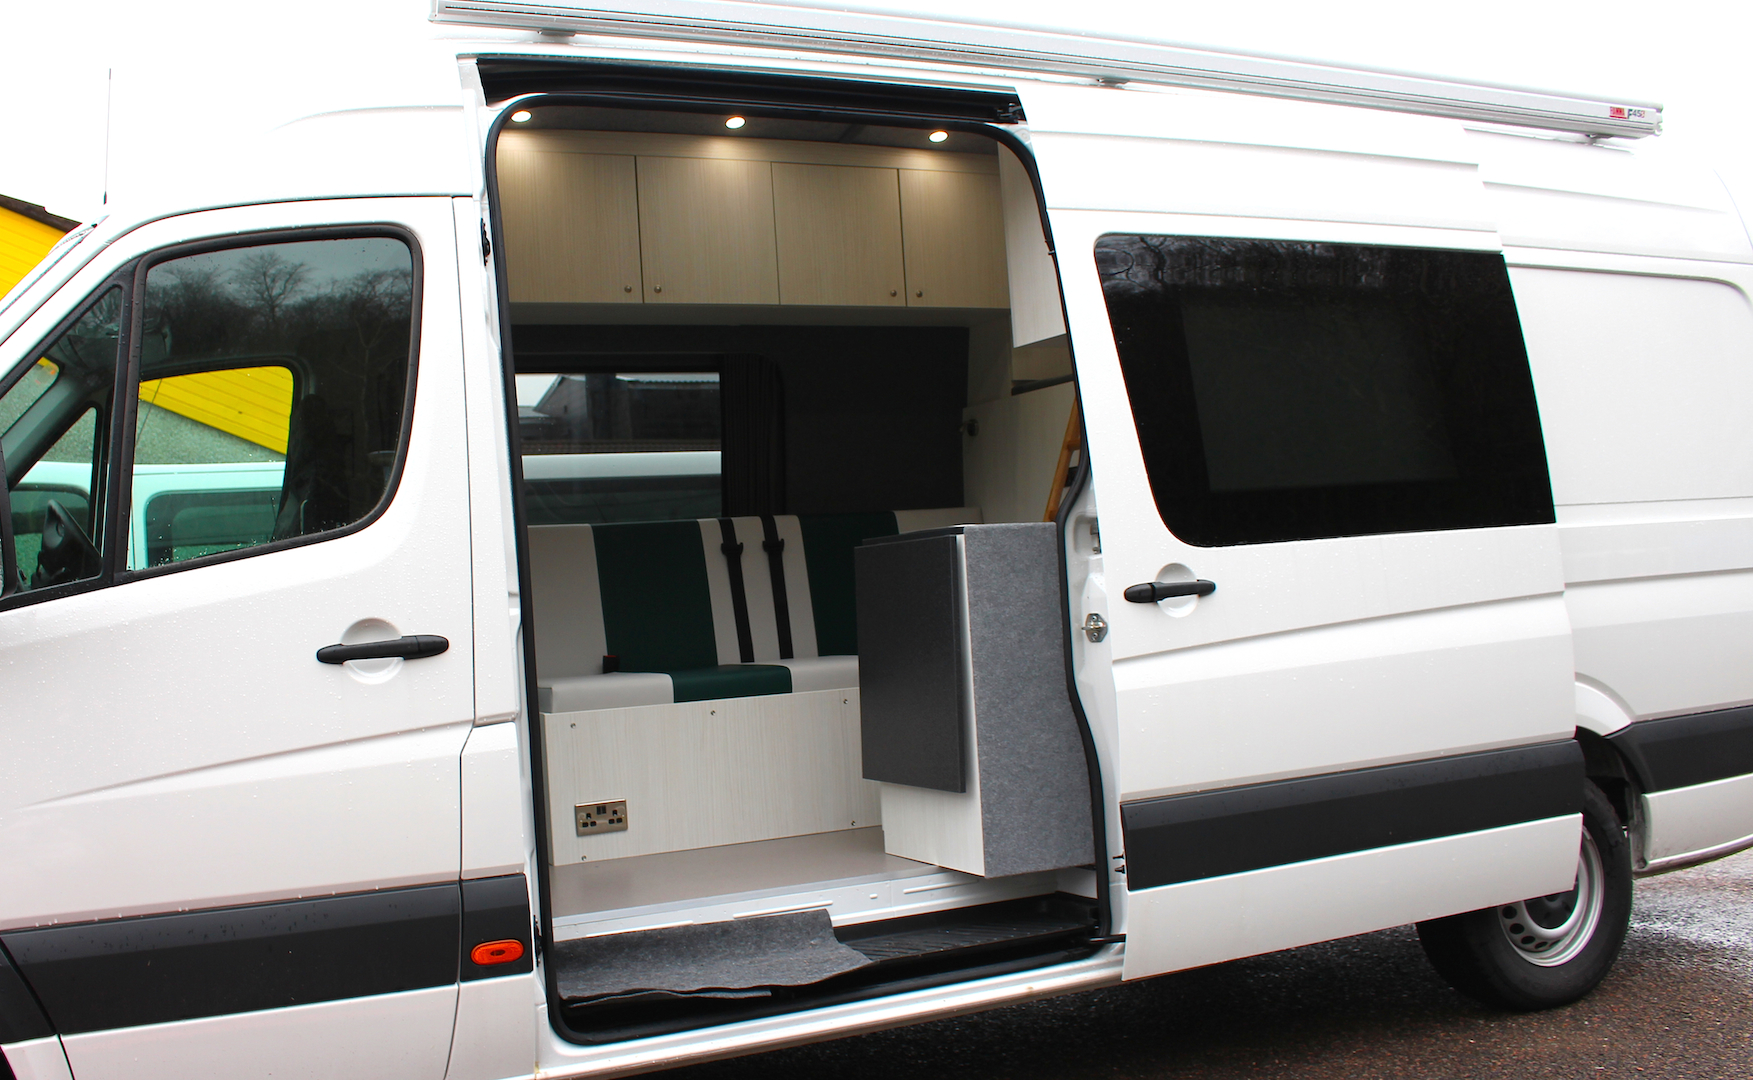 vanguard campervan conversions. Black Bedroom Furniture Sets. Home Design Ideas